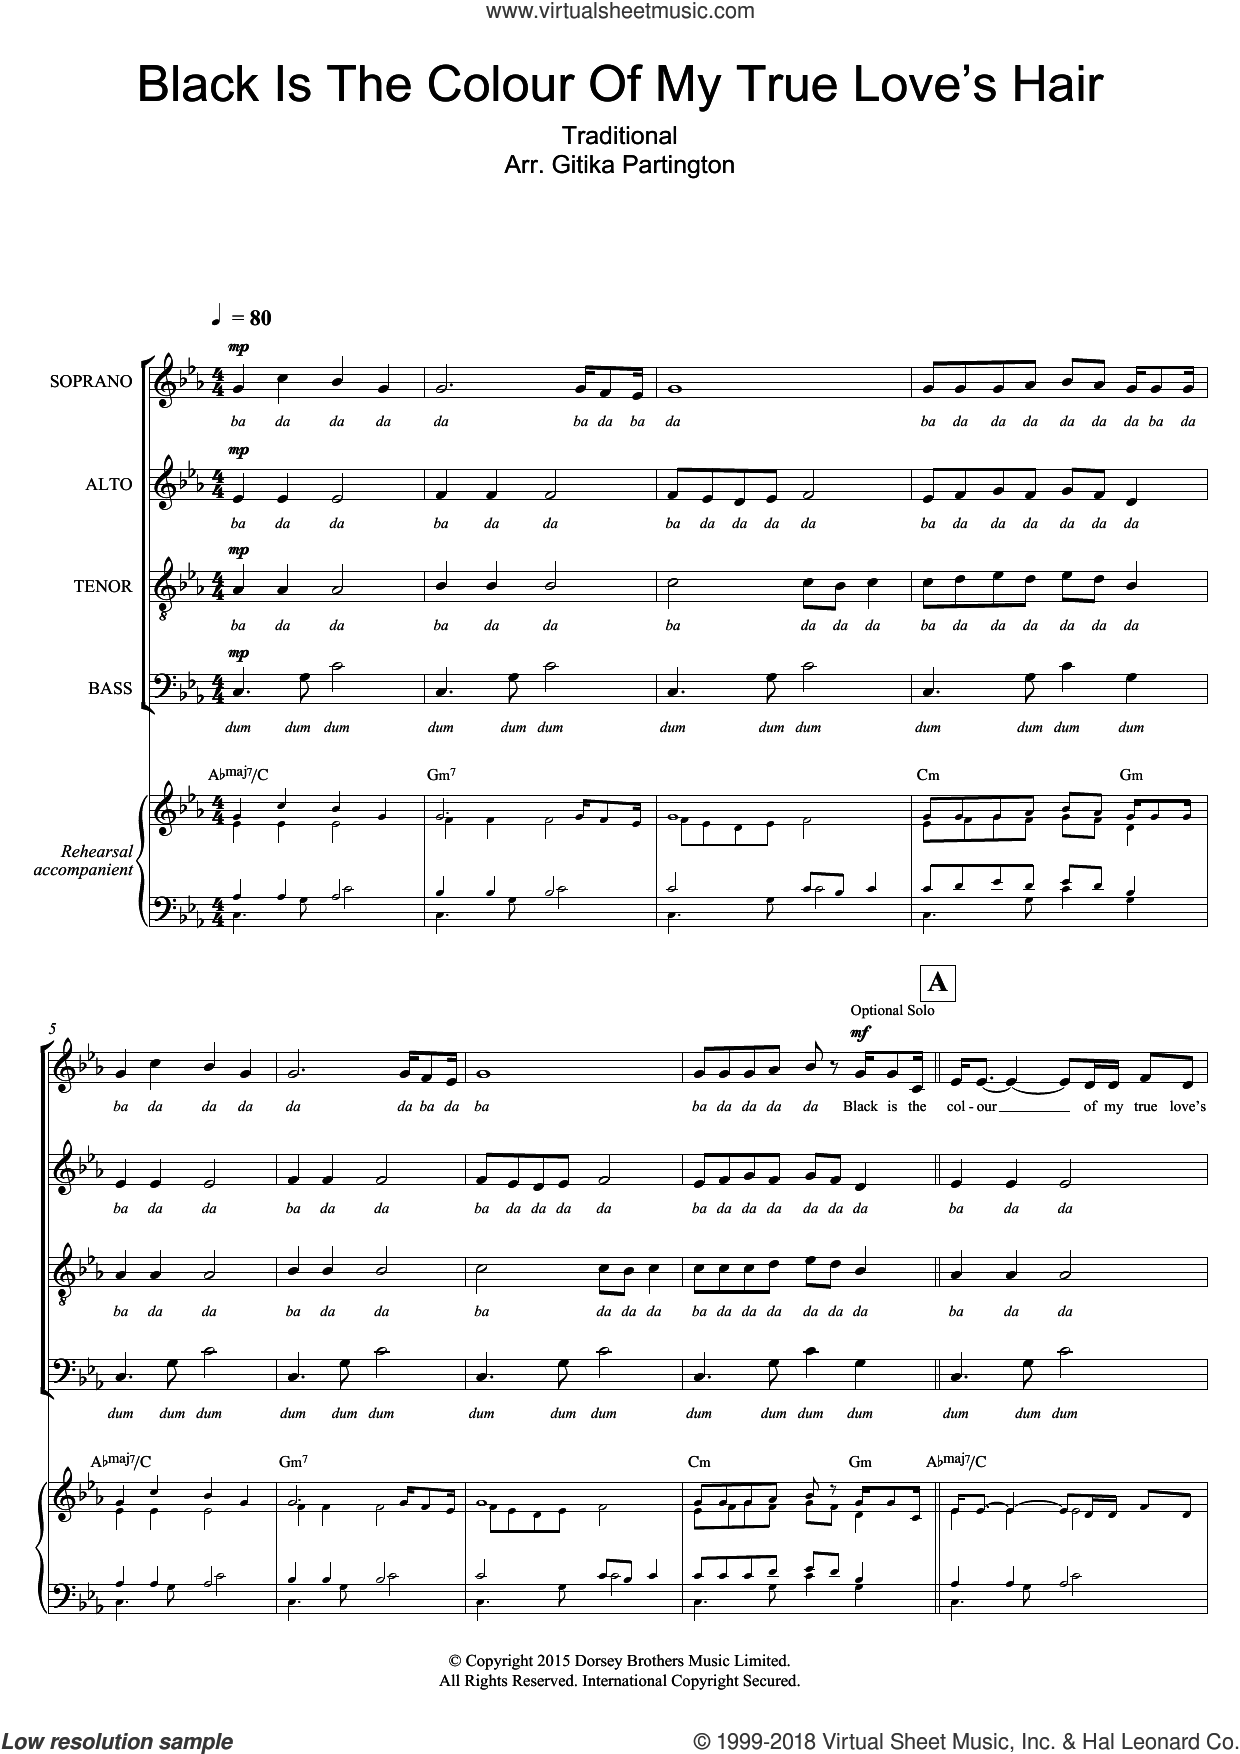 Black Is The Colour Of My True Love's Hair (Arr. Gitika Partington) sheet music for choir and piano by Traditional American Song and Miscellaneous. Score Image Preview.